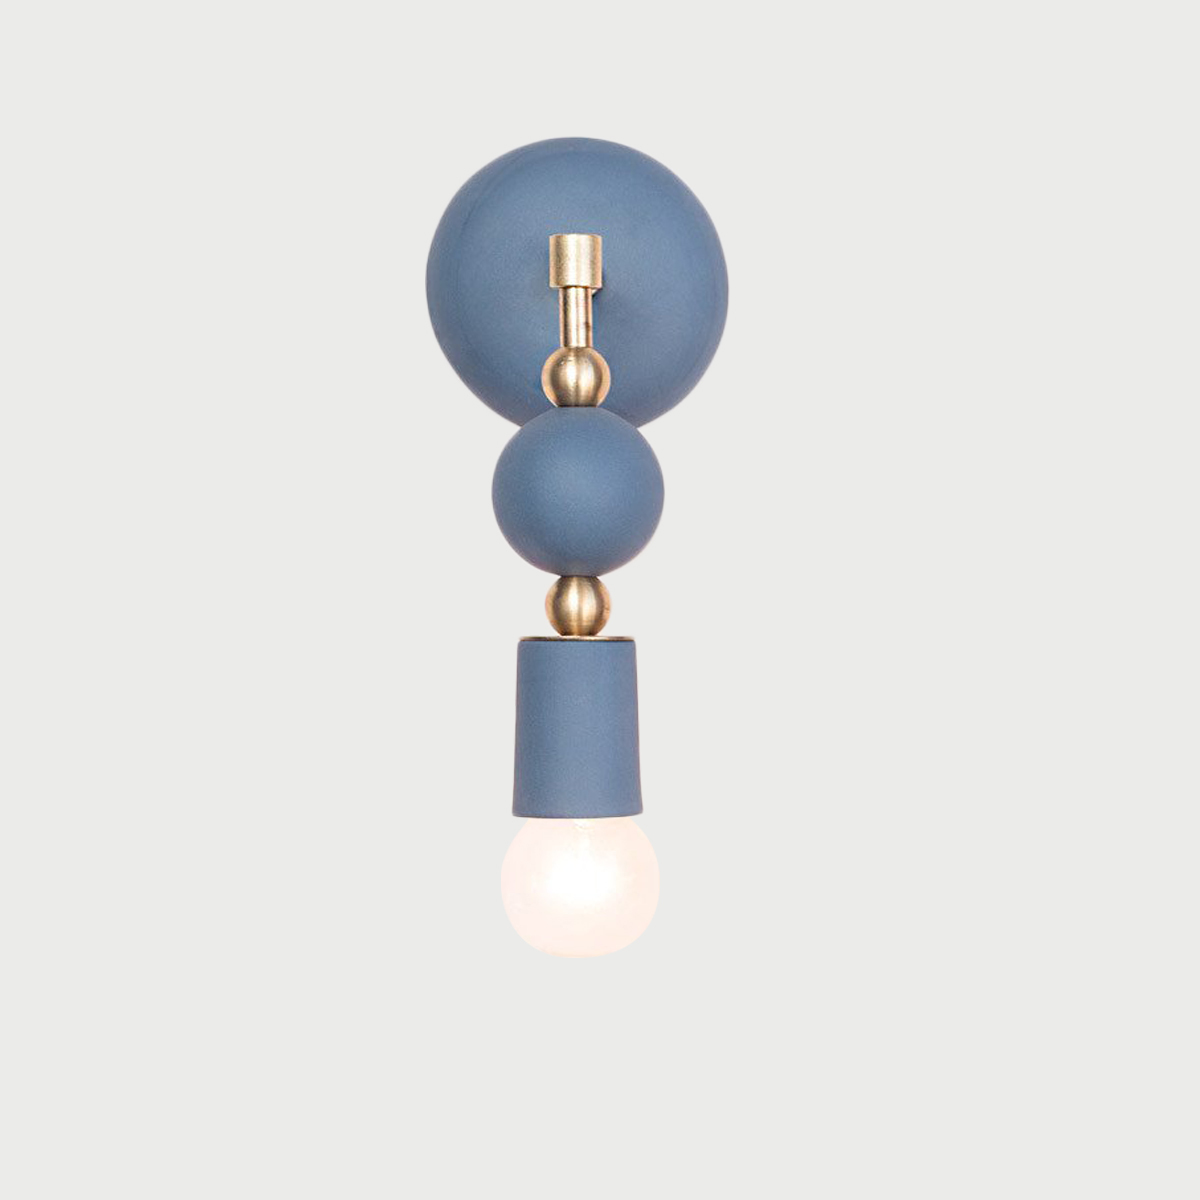 Ball_sconce_lit_navy.jpg